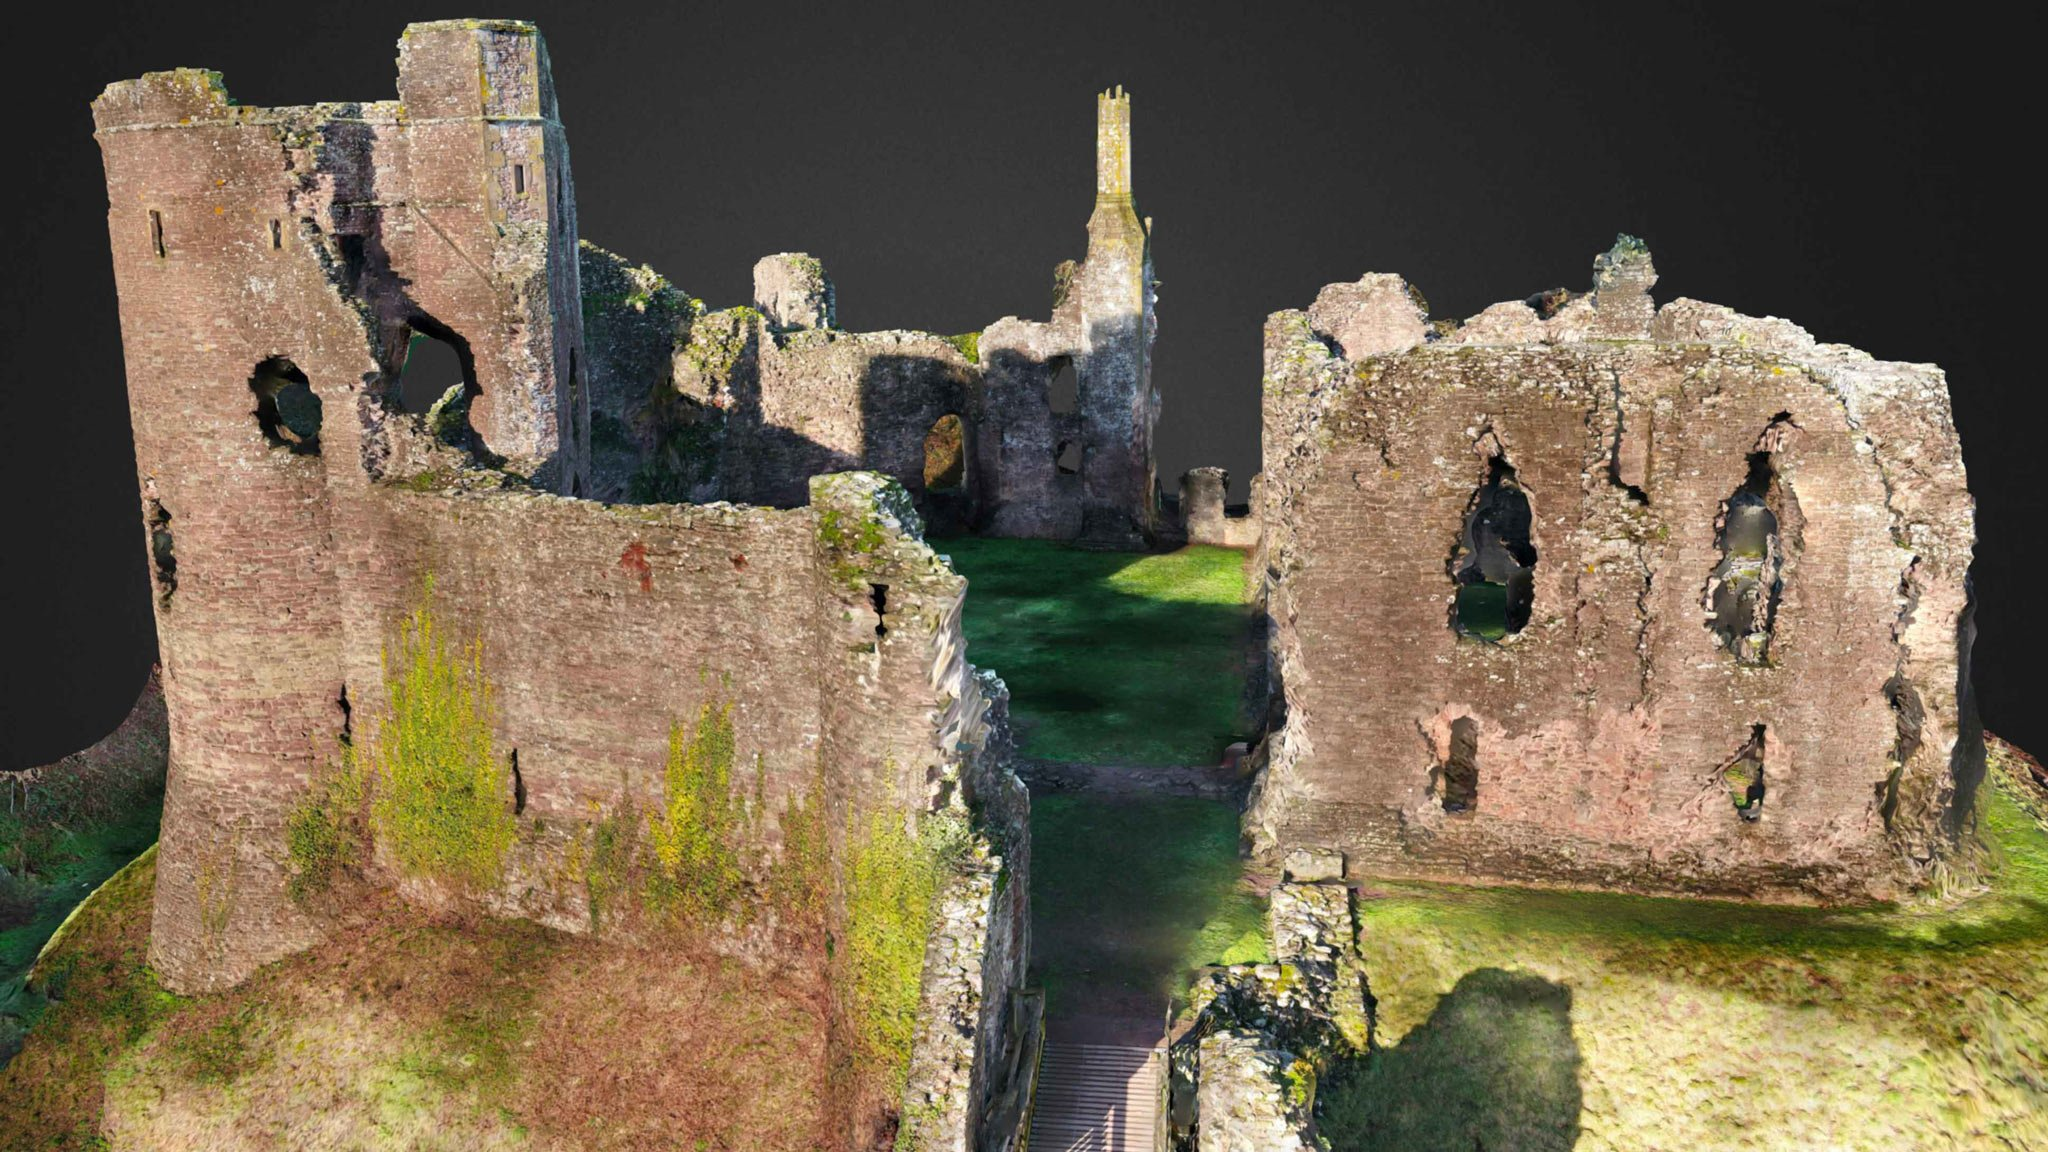 3D aerial render of a castle